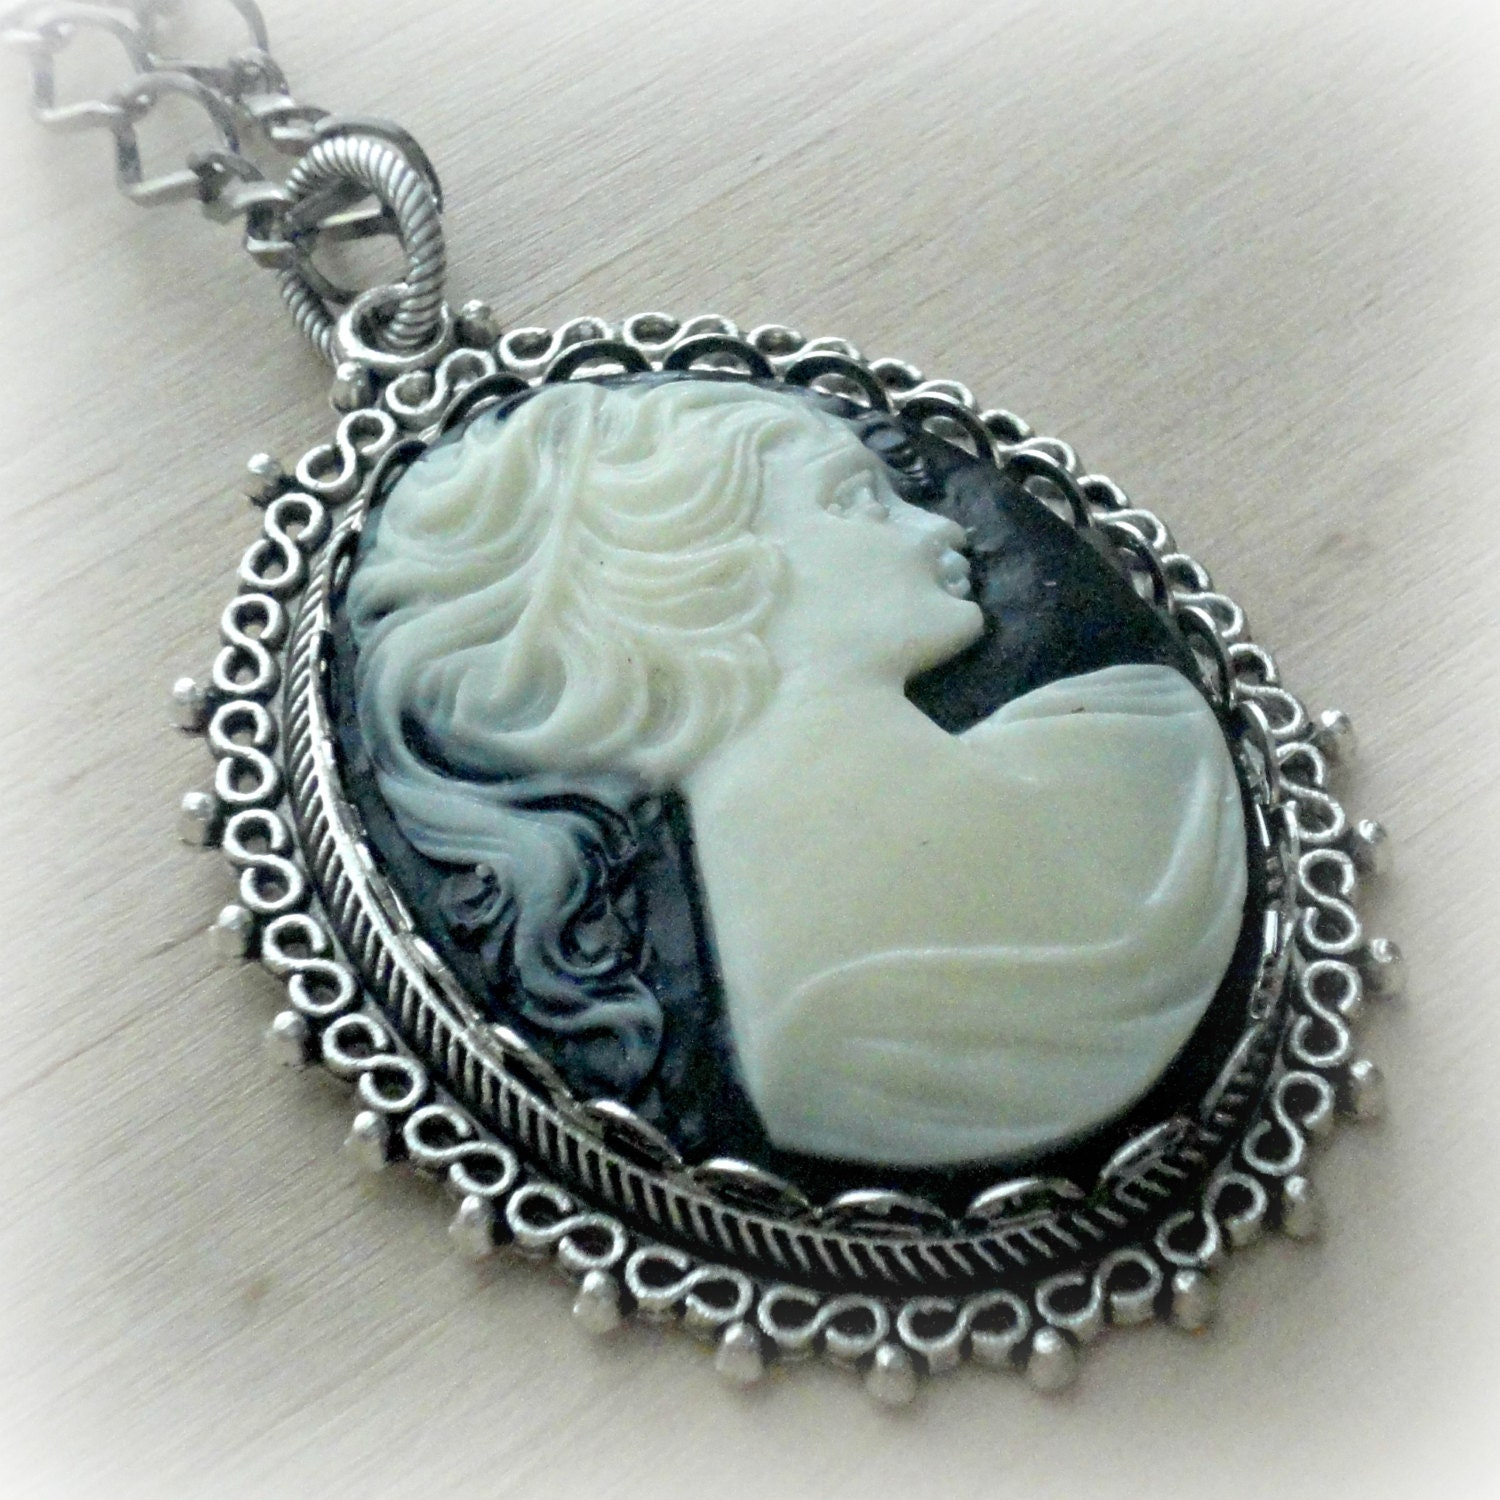 cameo necklace vintage style cameo pendant necklace